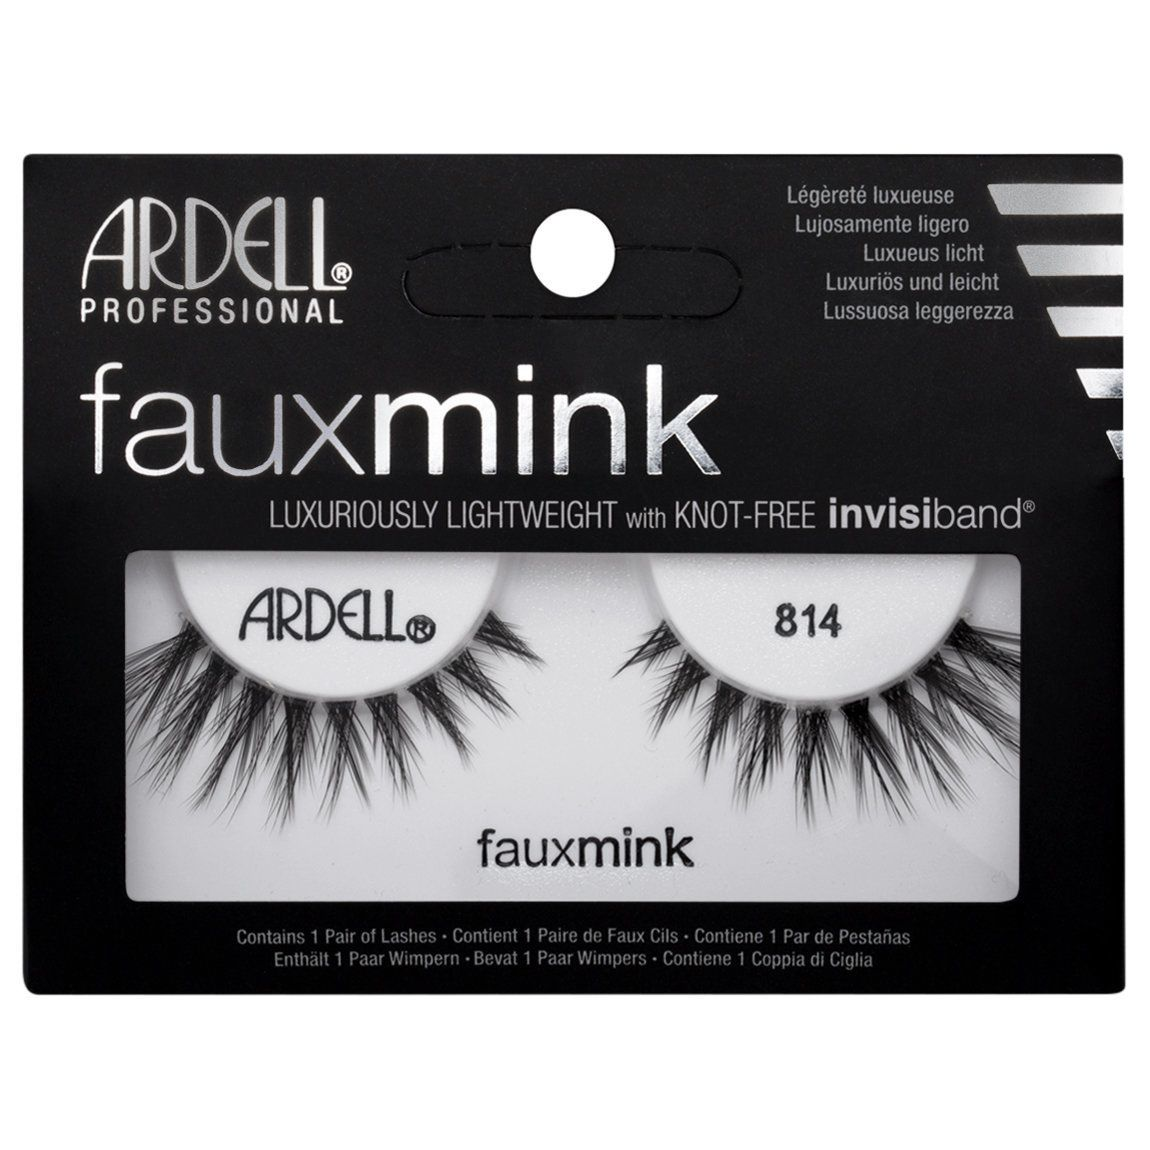 6baa0366462 Faux Mink Lashes in 2019 | Styles | Pinterest | Lashes, Black lashes ...